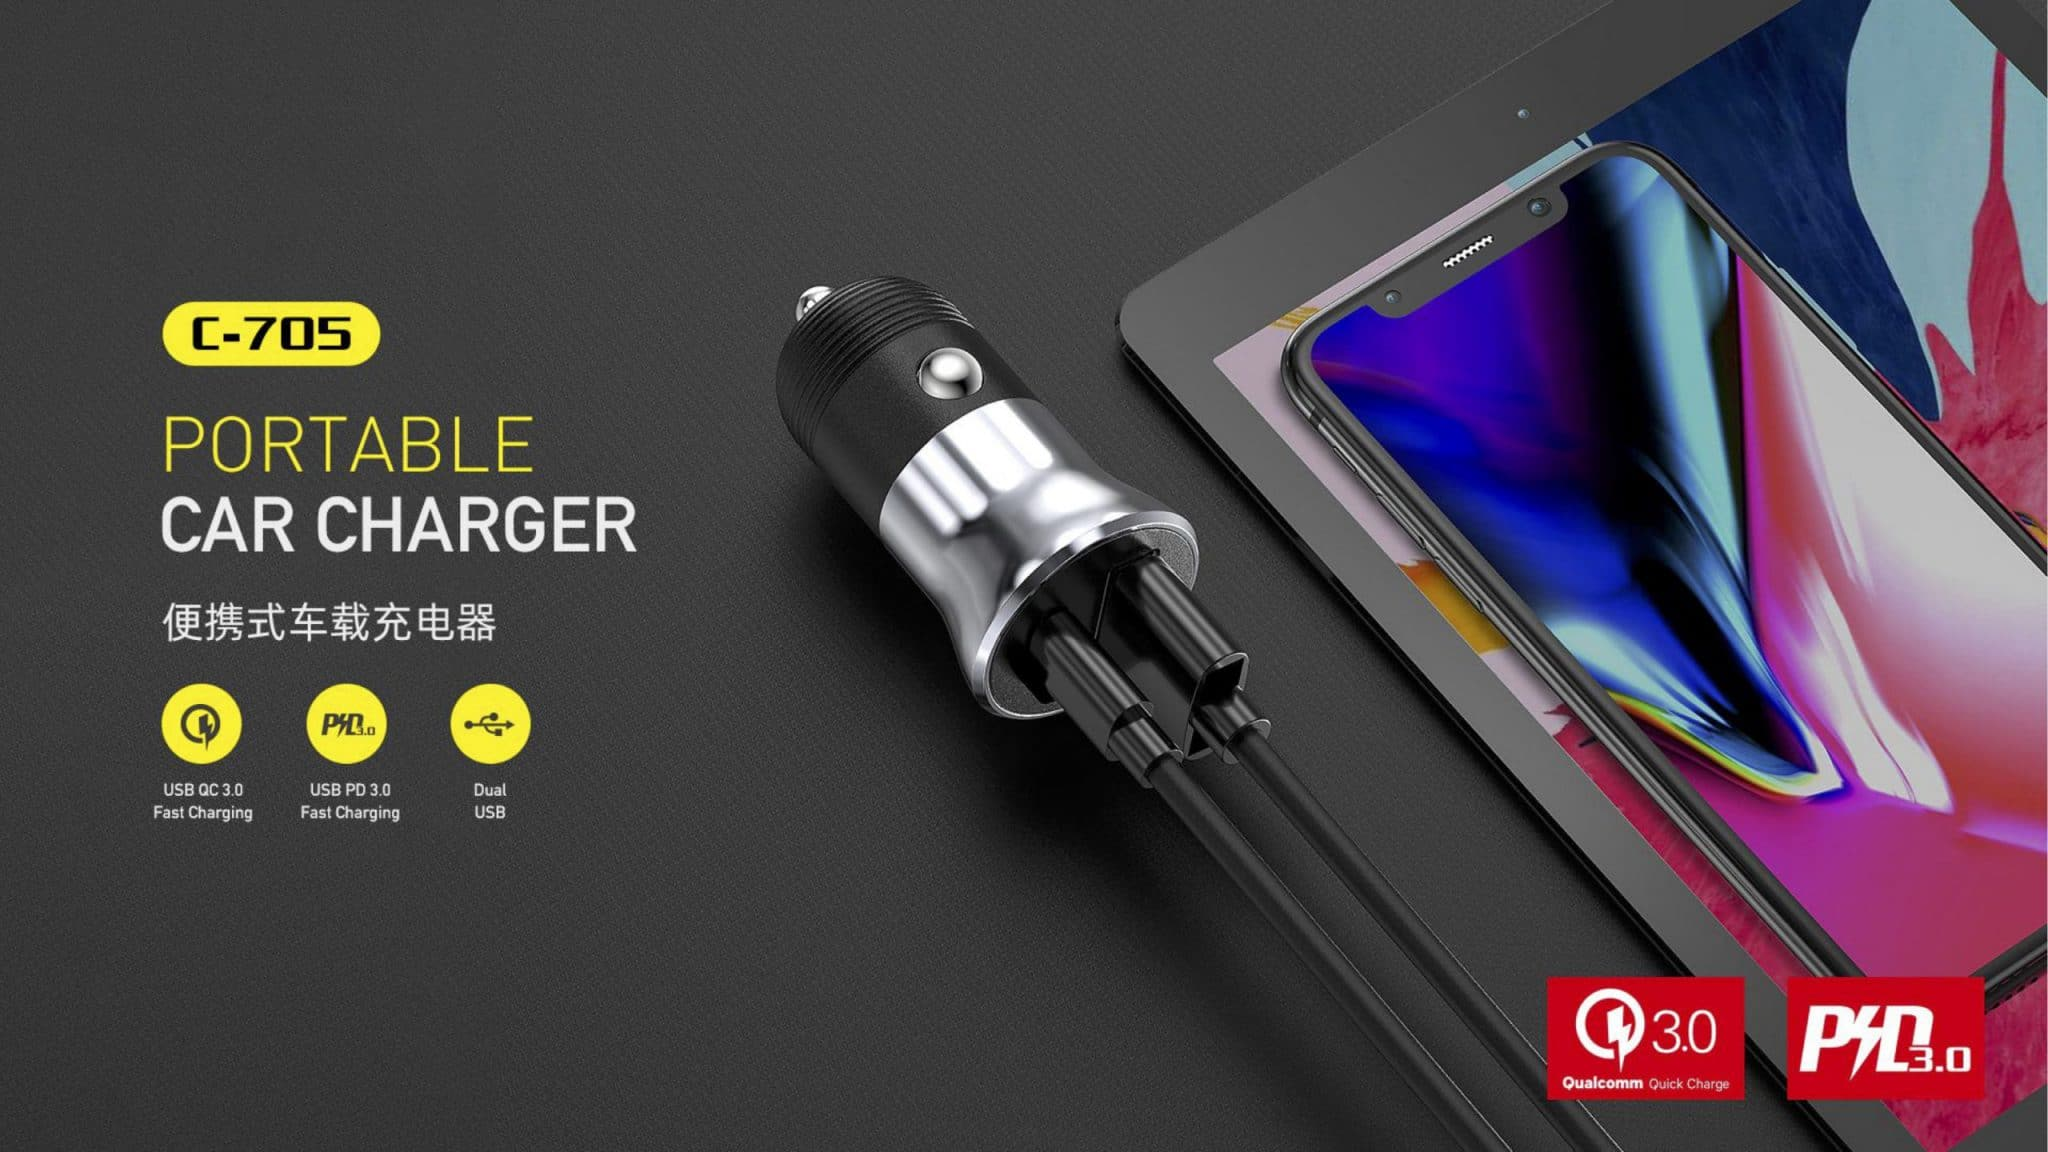 Awei Portable Car Charger C-705